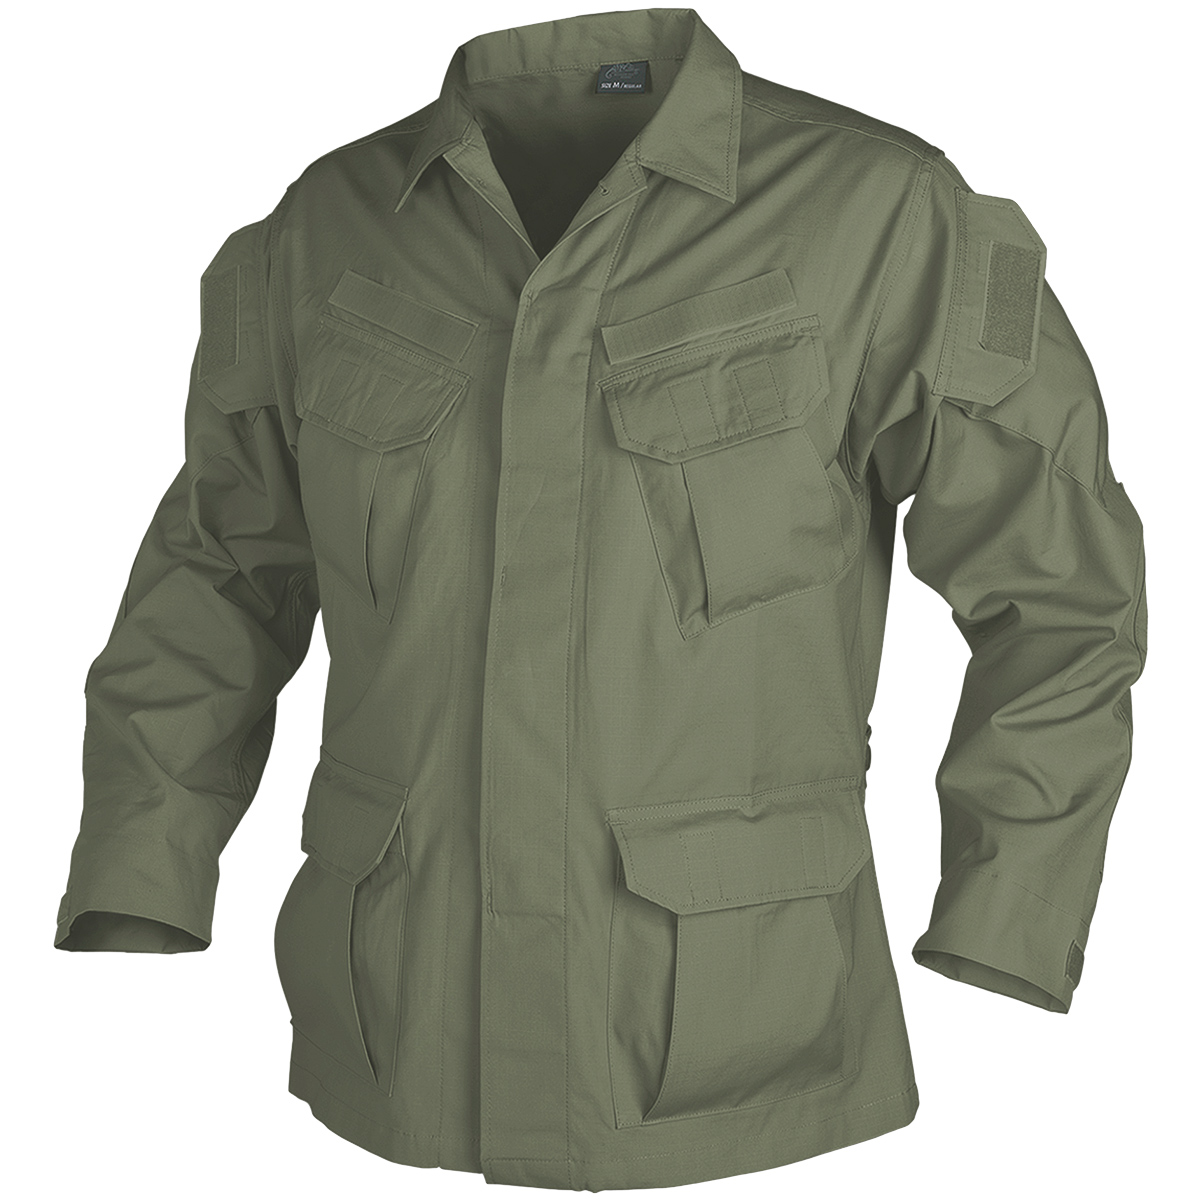 HELIKON SFU TACTICAL COMBAT ARMY MENS SHIRT MILITARY SECURITY JACKET OLIVE GREEN